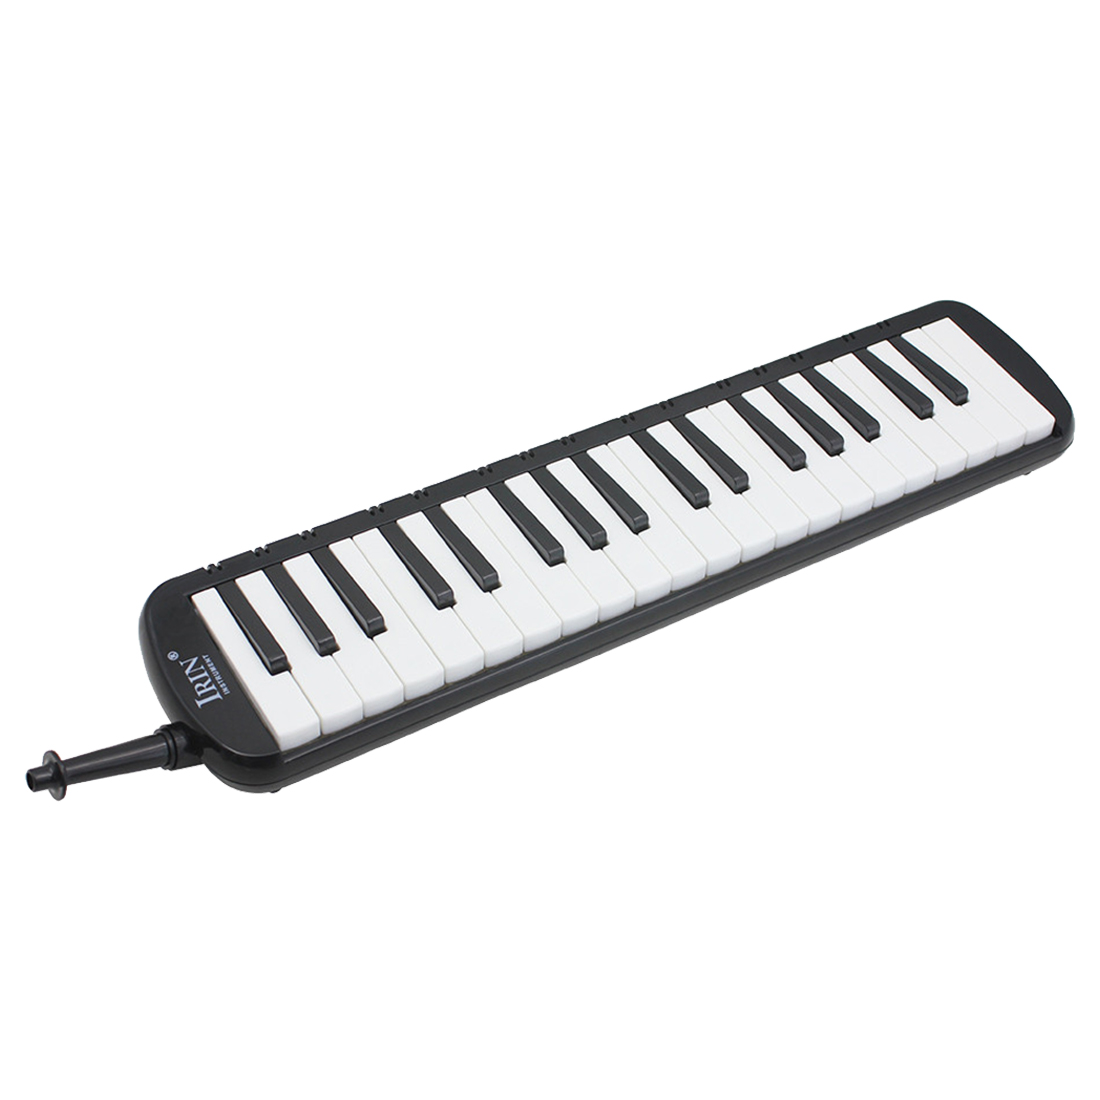 SYDS IRIN Black 37 Piano Keys Melodica Pianica W/Carrying Bag For Students New